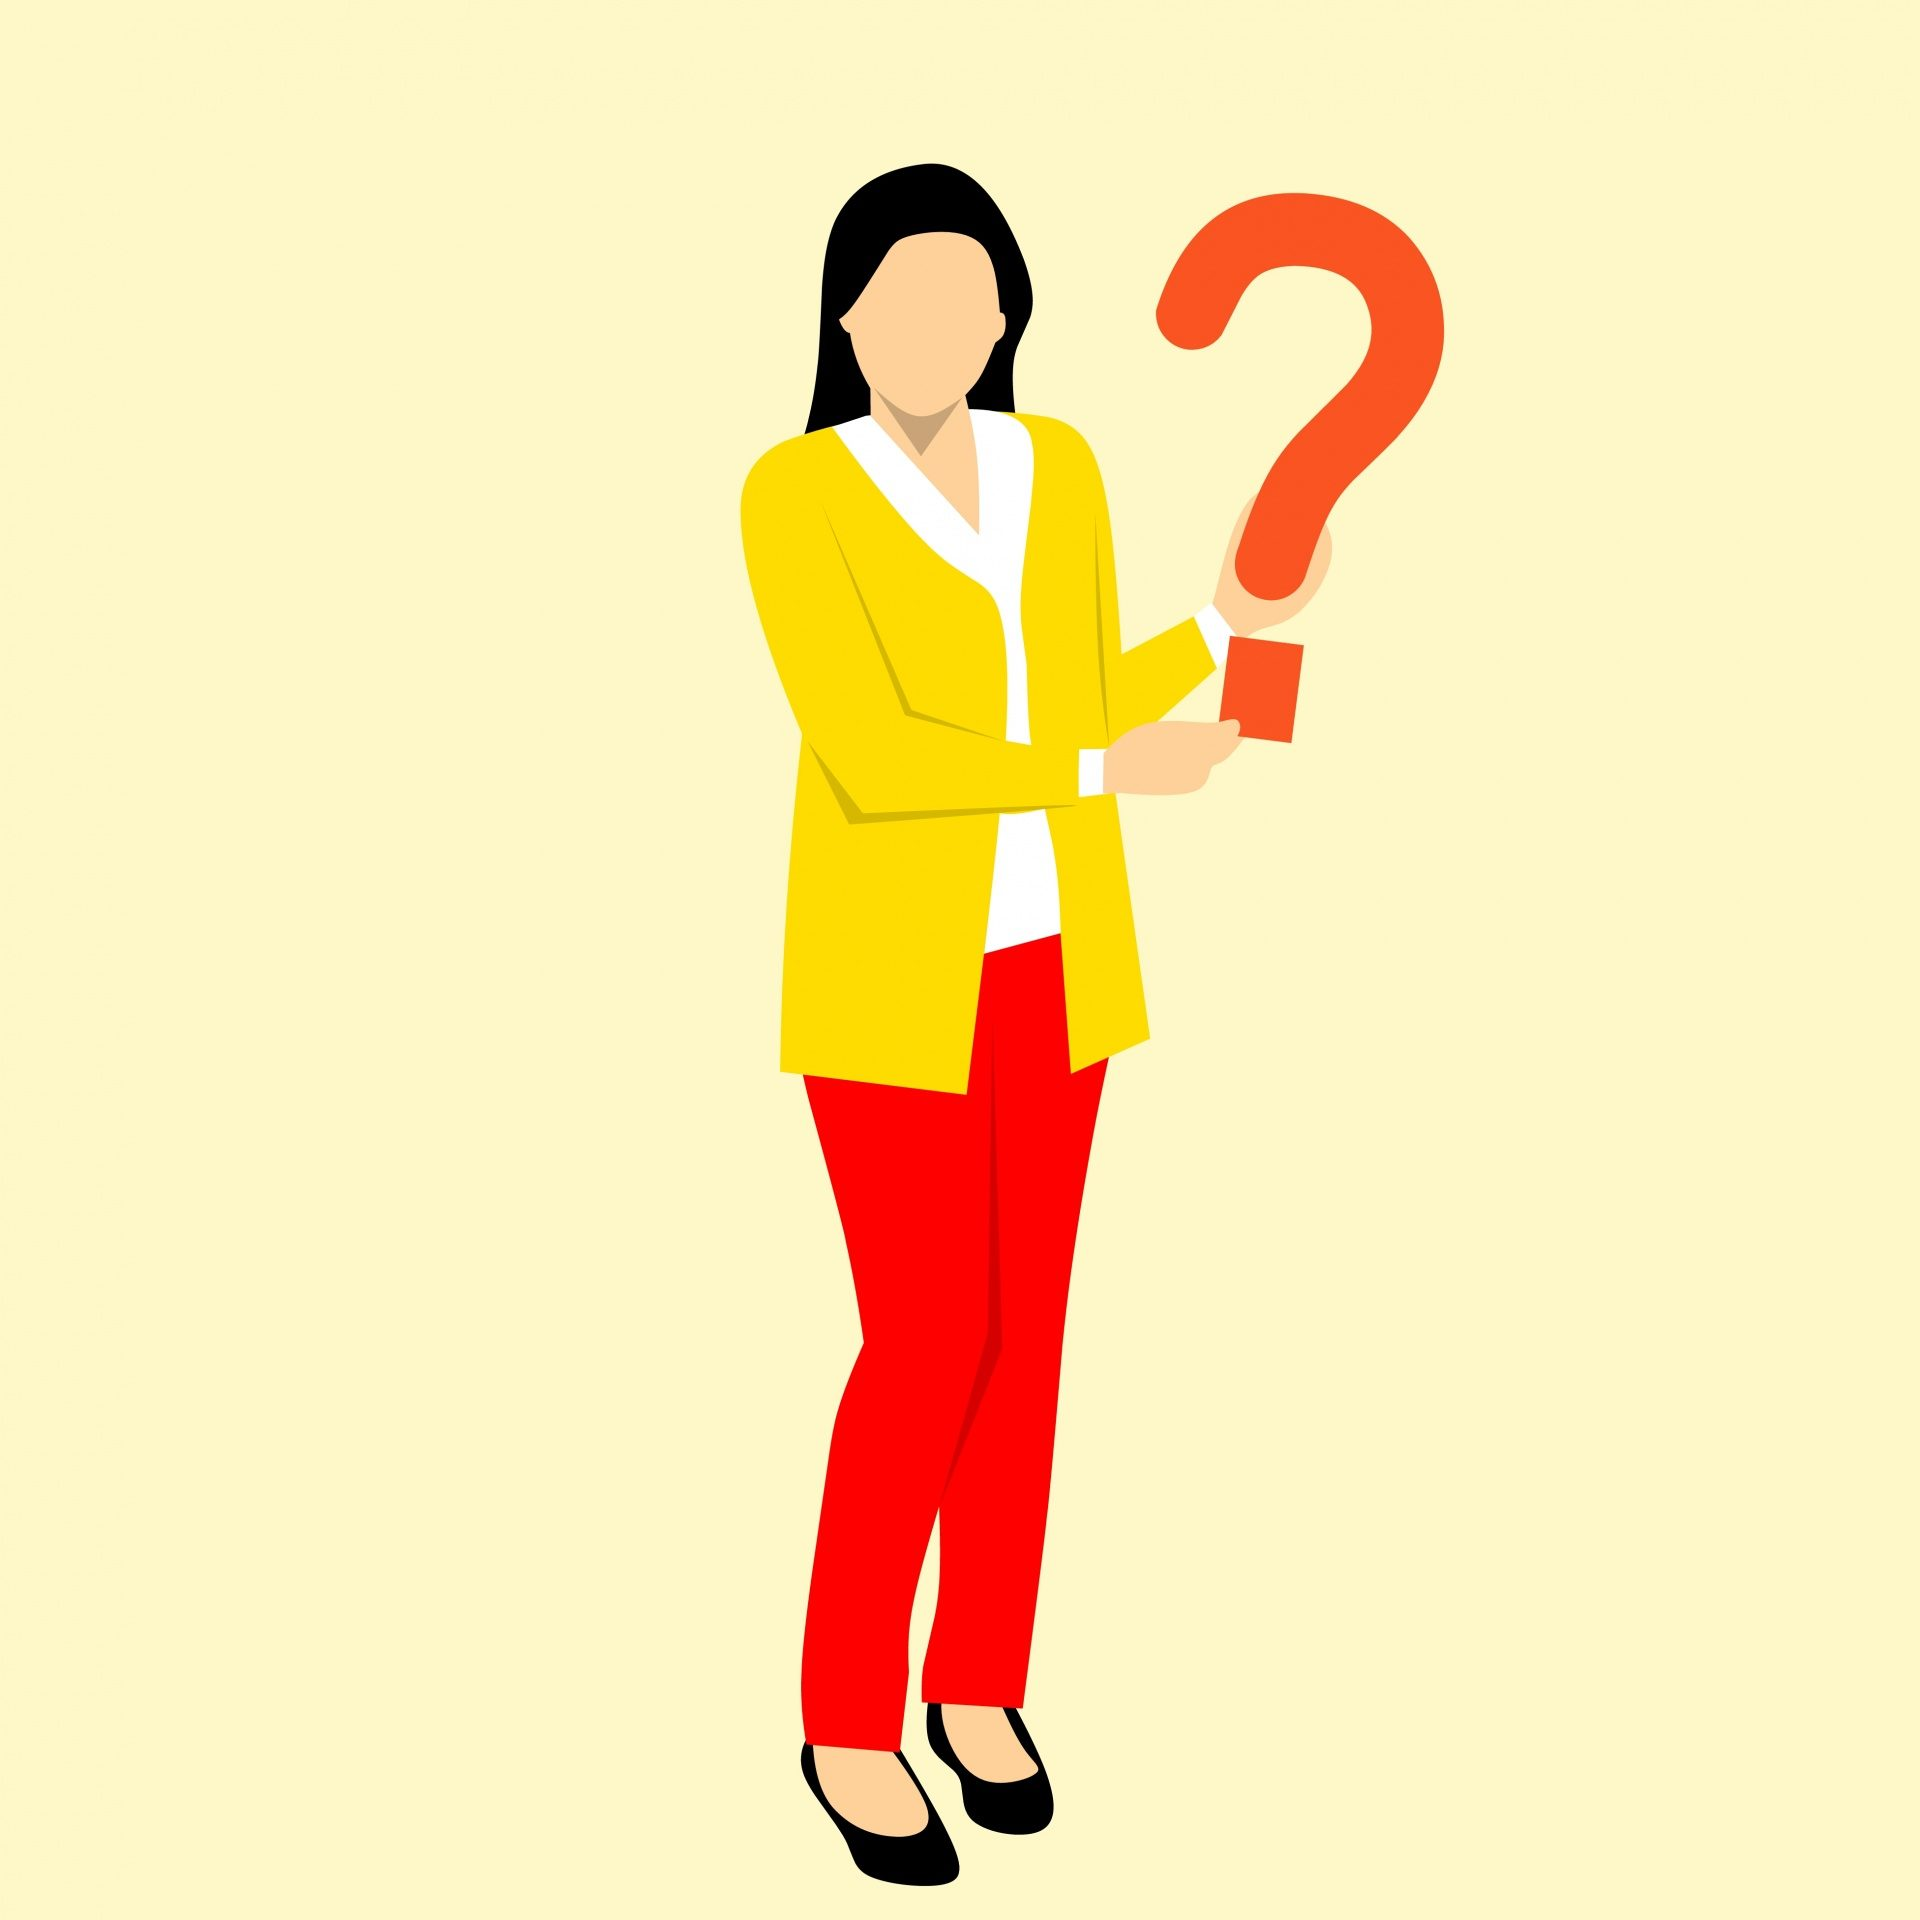 woman-holding-questions.jpg